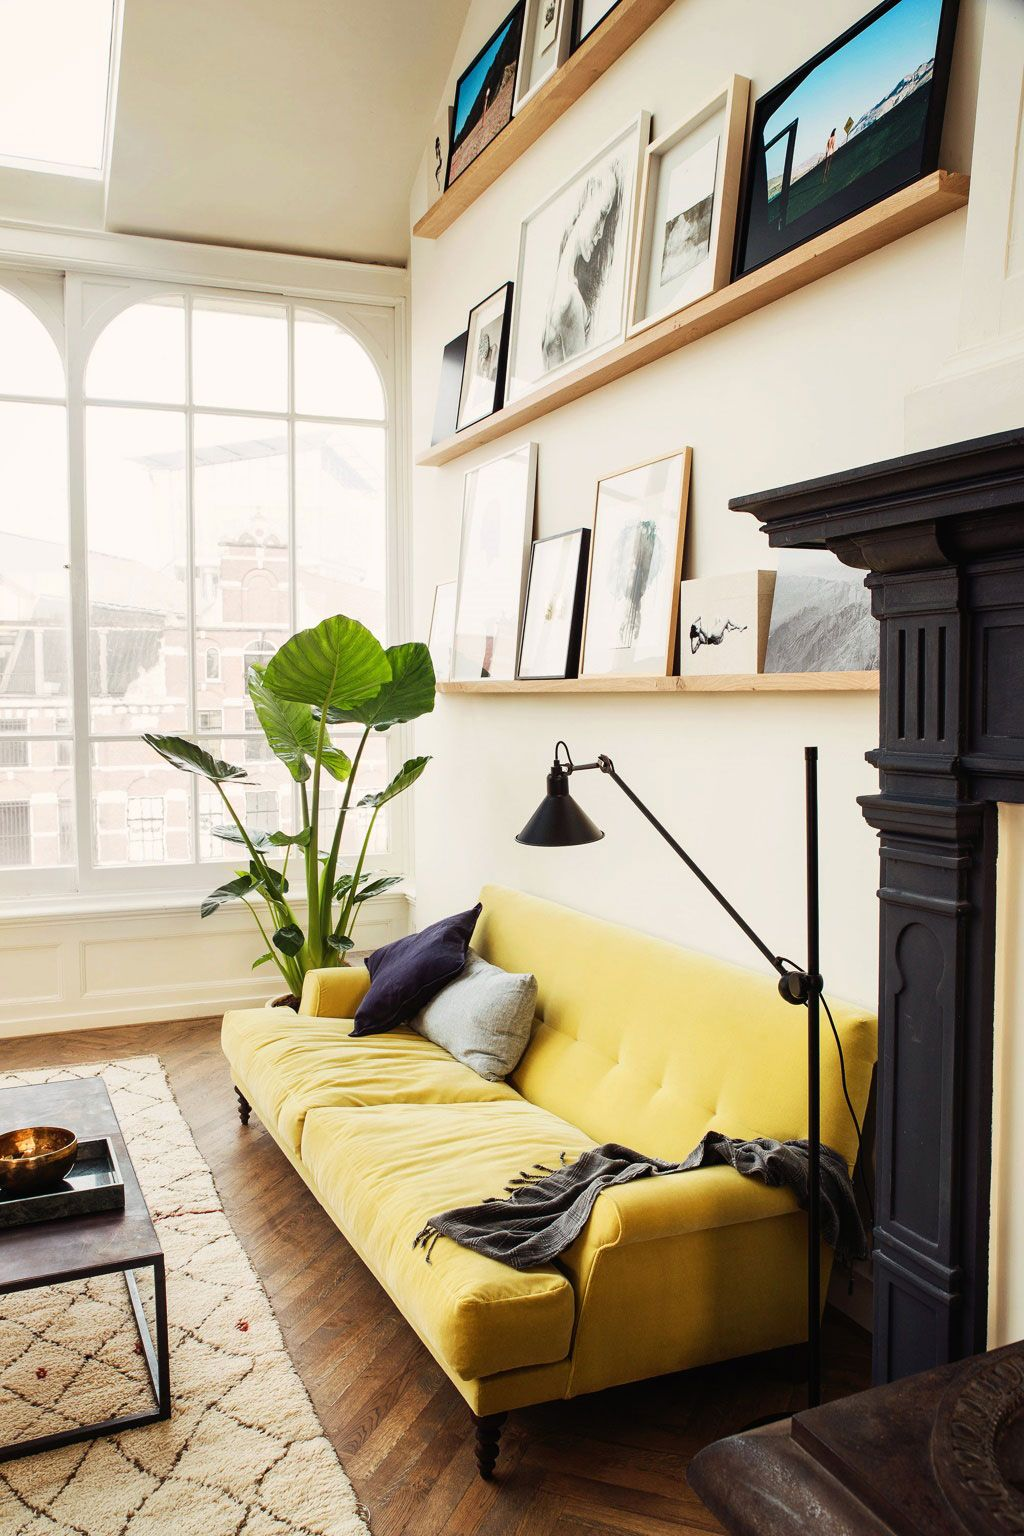 Enter the Loft. Enter the Loft   Yellow couch  Black fireplace mantels and Lofts